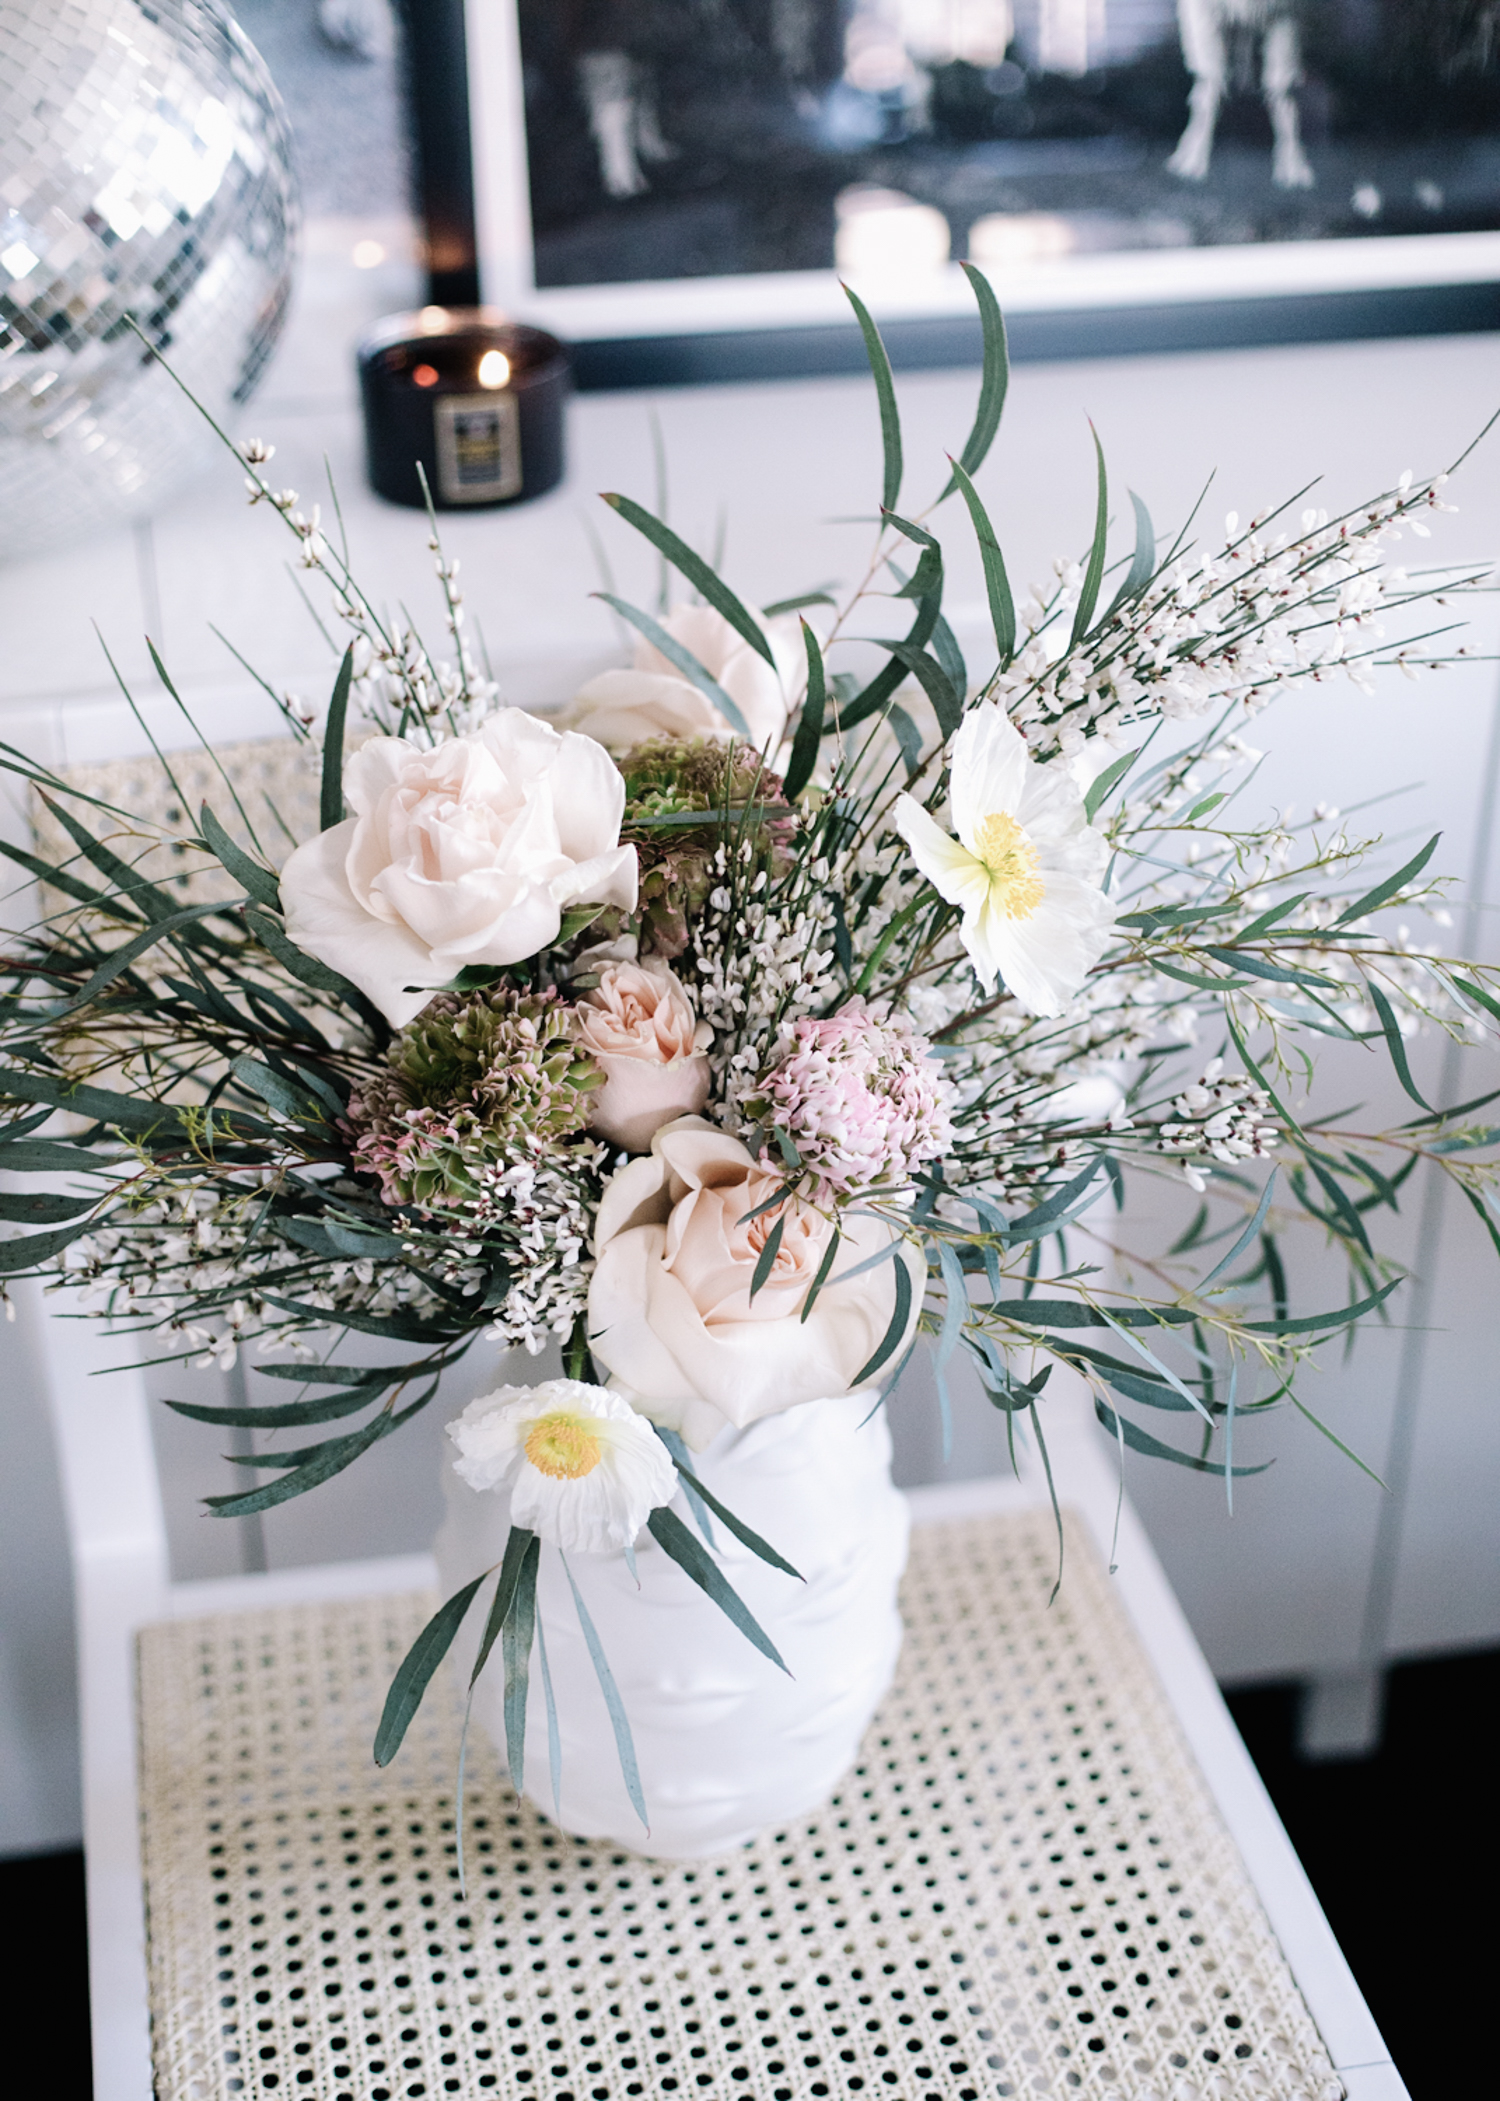 February Floral Arrangement | A Fabulous Fete